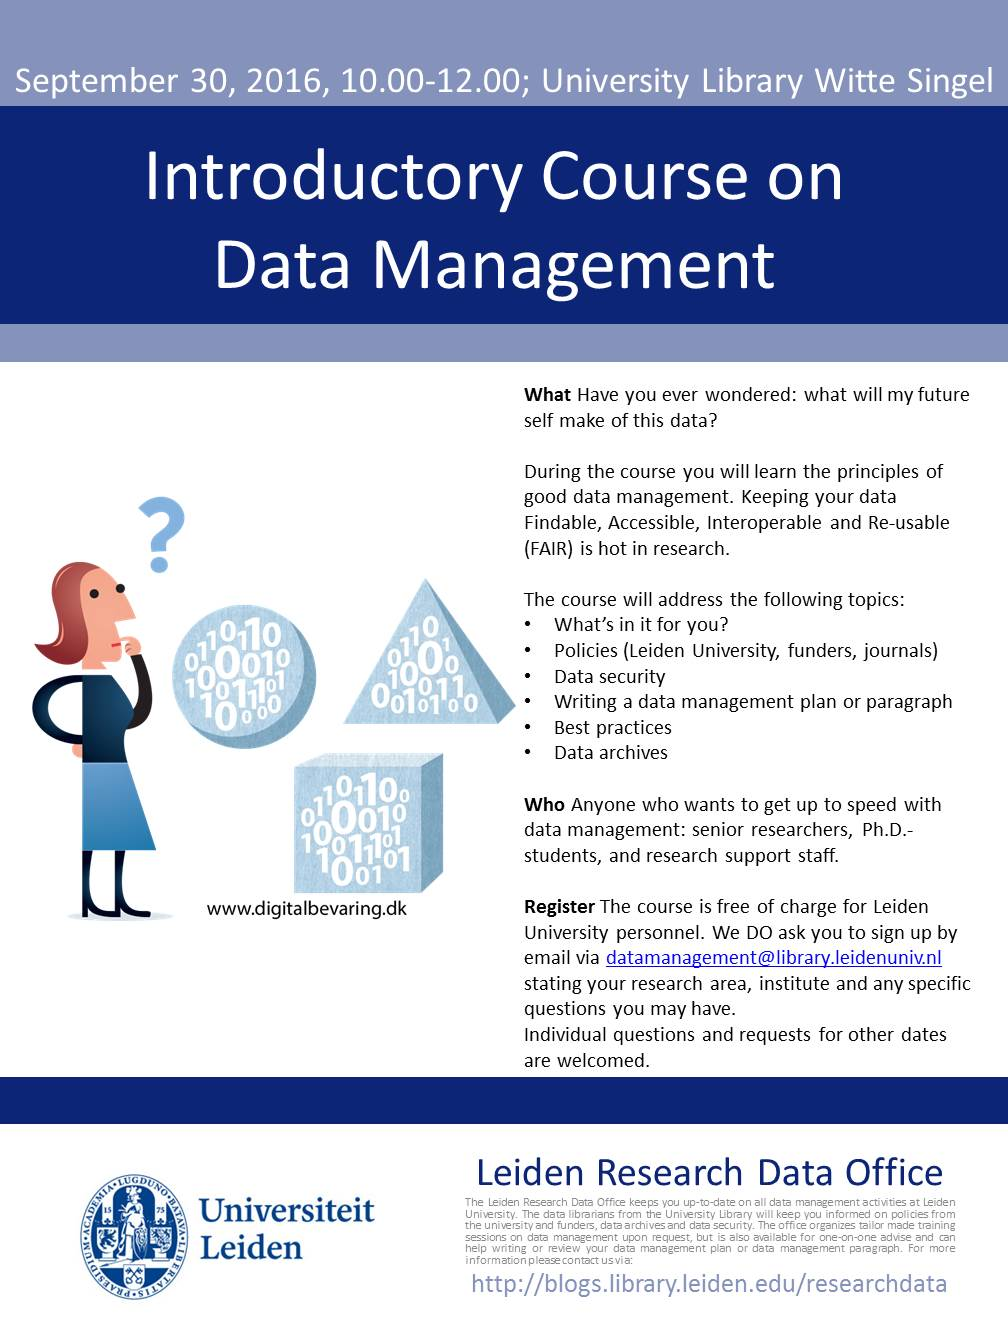 Introductory Course On Data Management Leiden Research Blog Security Courses Published 1 September 2016 At 1008 1344